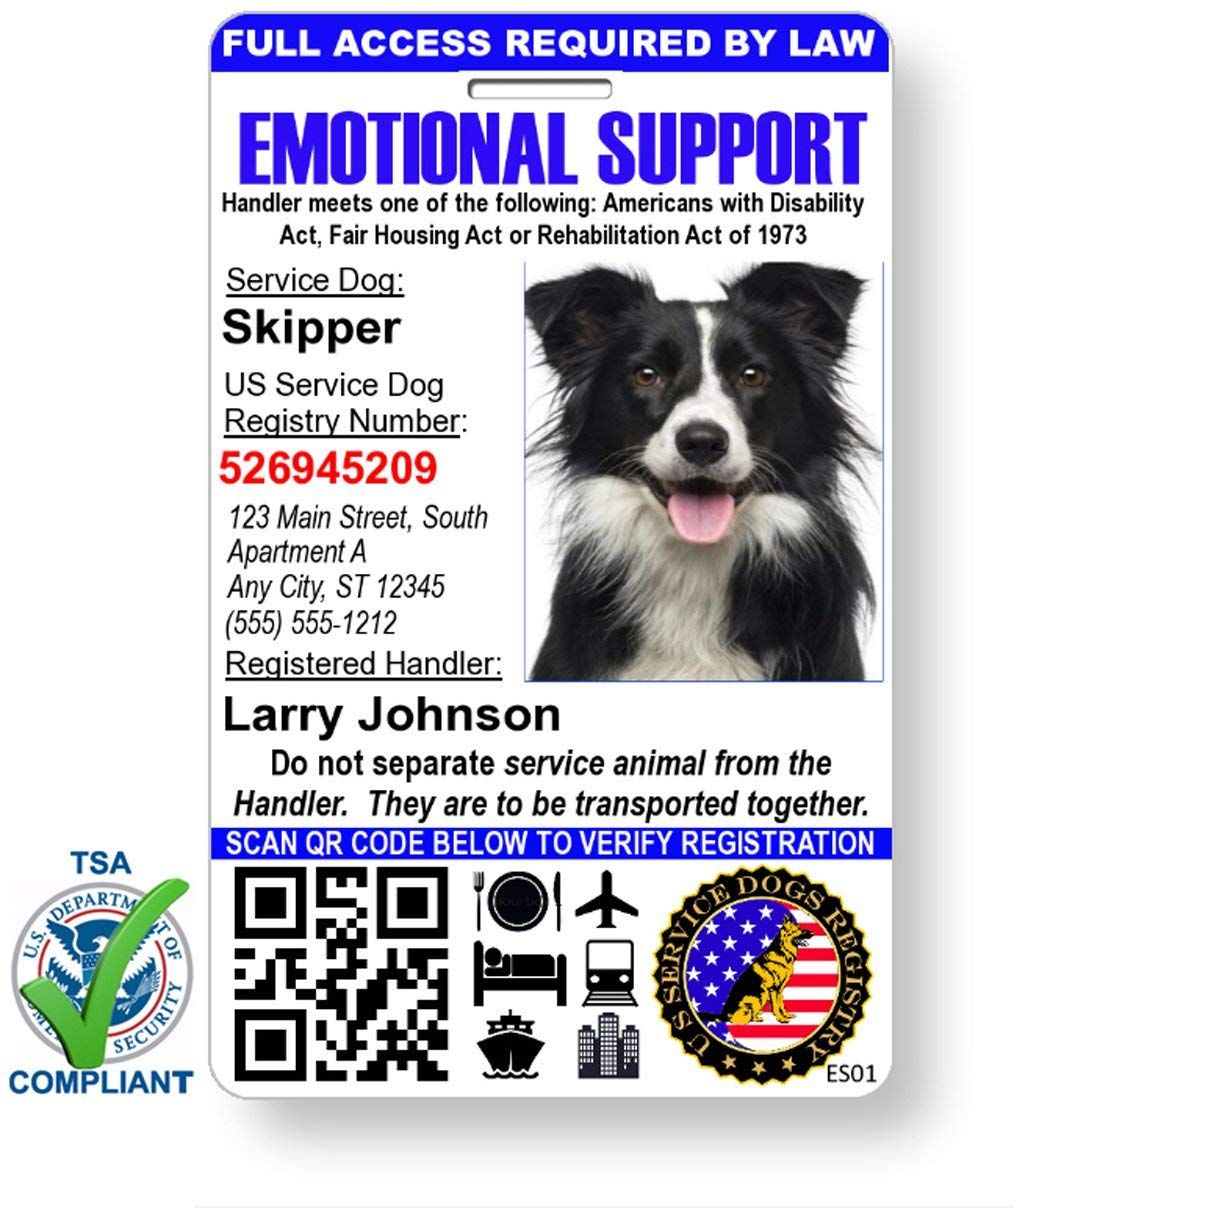 Just 4 Paws Custom Holographic Qr Code Emotional Support Dog Id Card With Registration To Service Dogs Registry Emotional Support Dog Emotional Support Dog Id